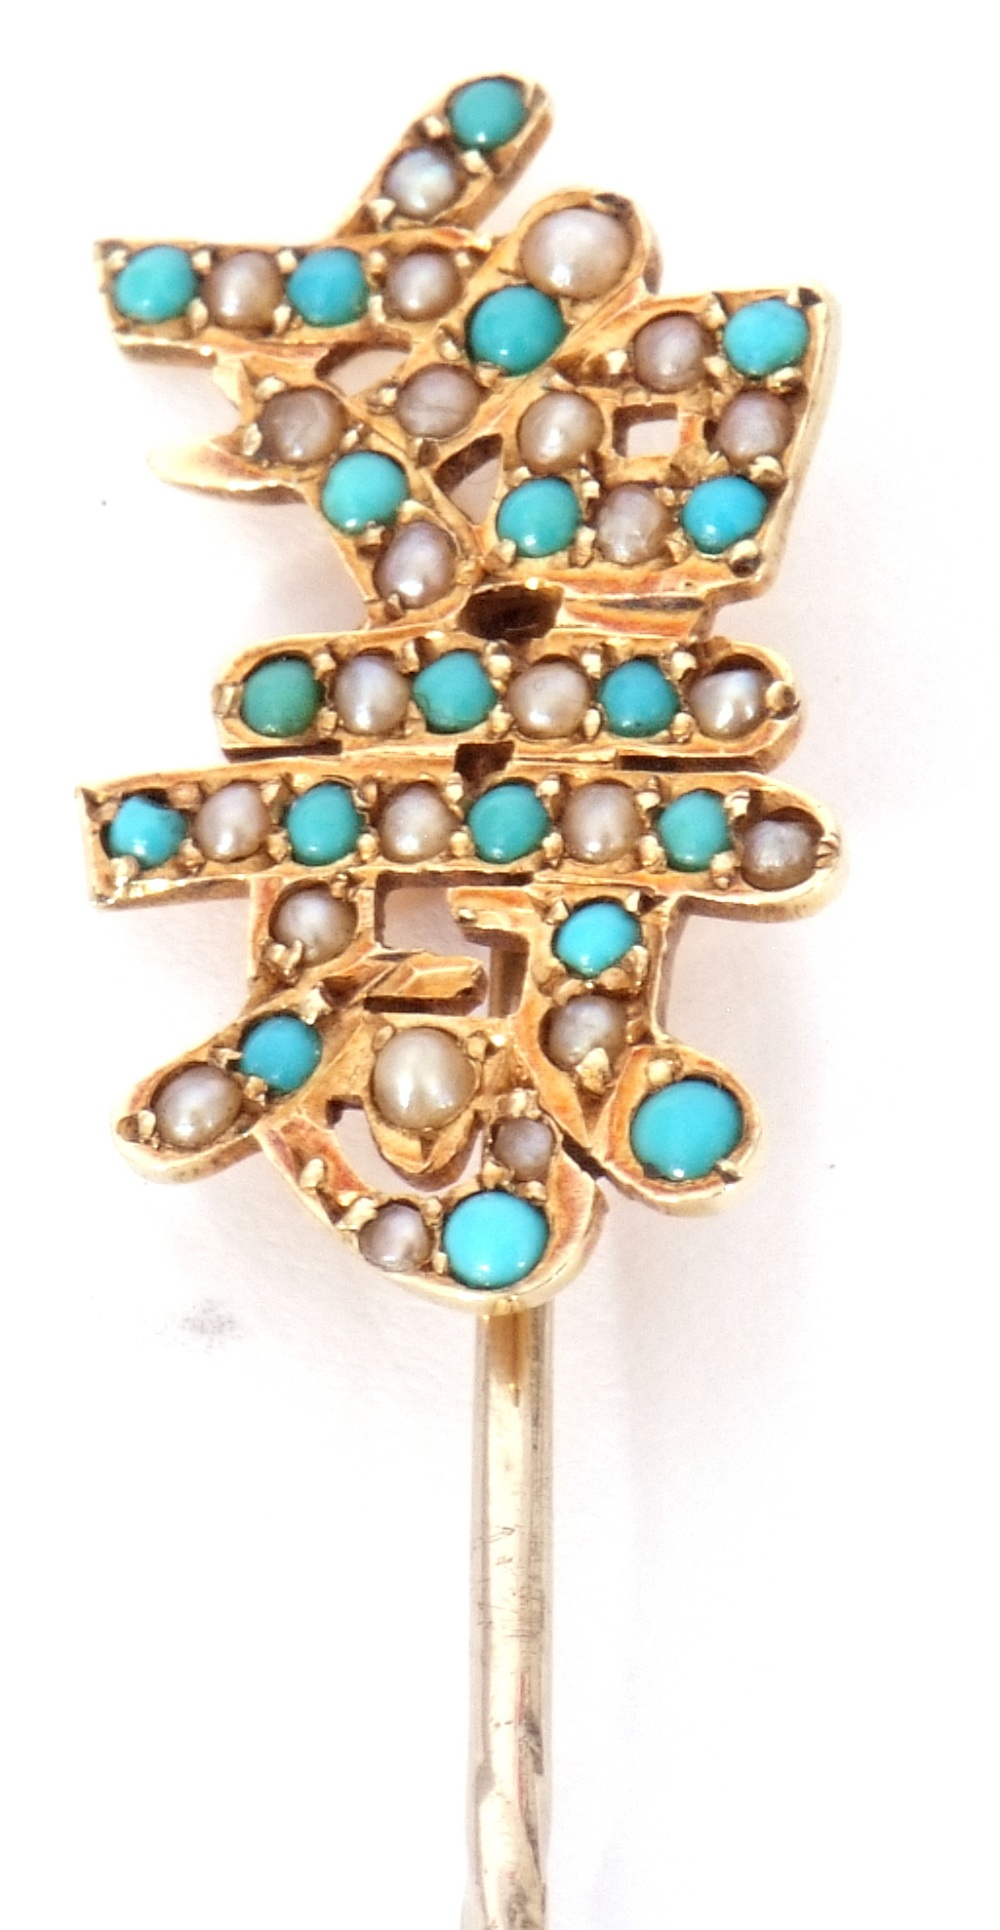 Mixed Lot: 15ct marked stick pin, the finial set with small turquoise and seed pearls, an antique - Image 5 of 5